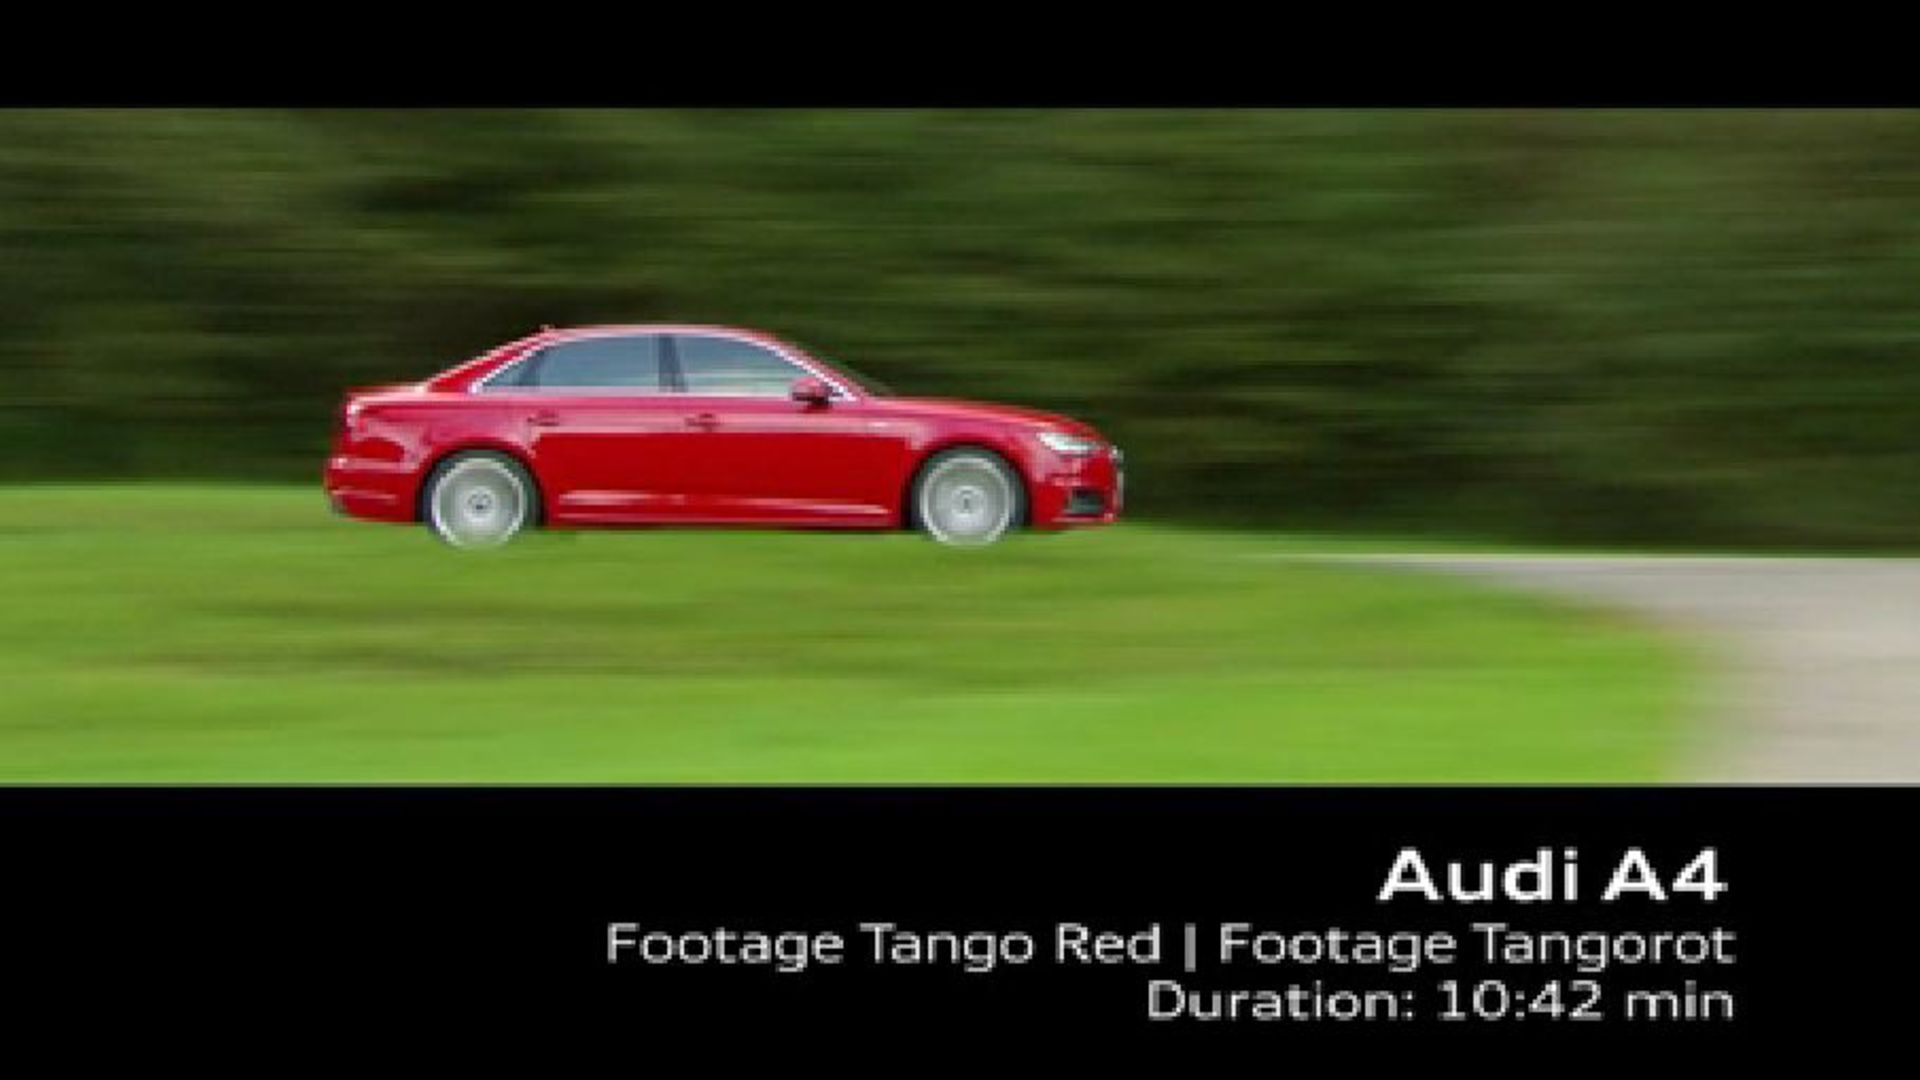 Audi A4 Limousine (2015) - Footage Tangorot